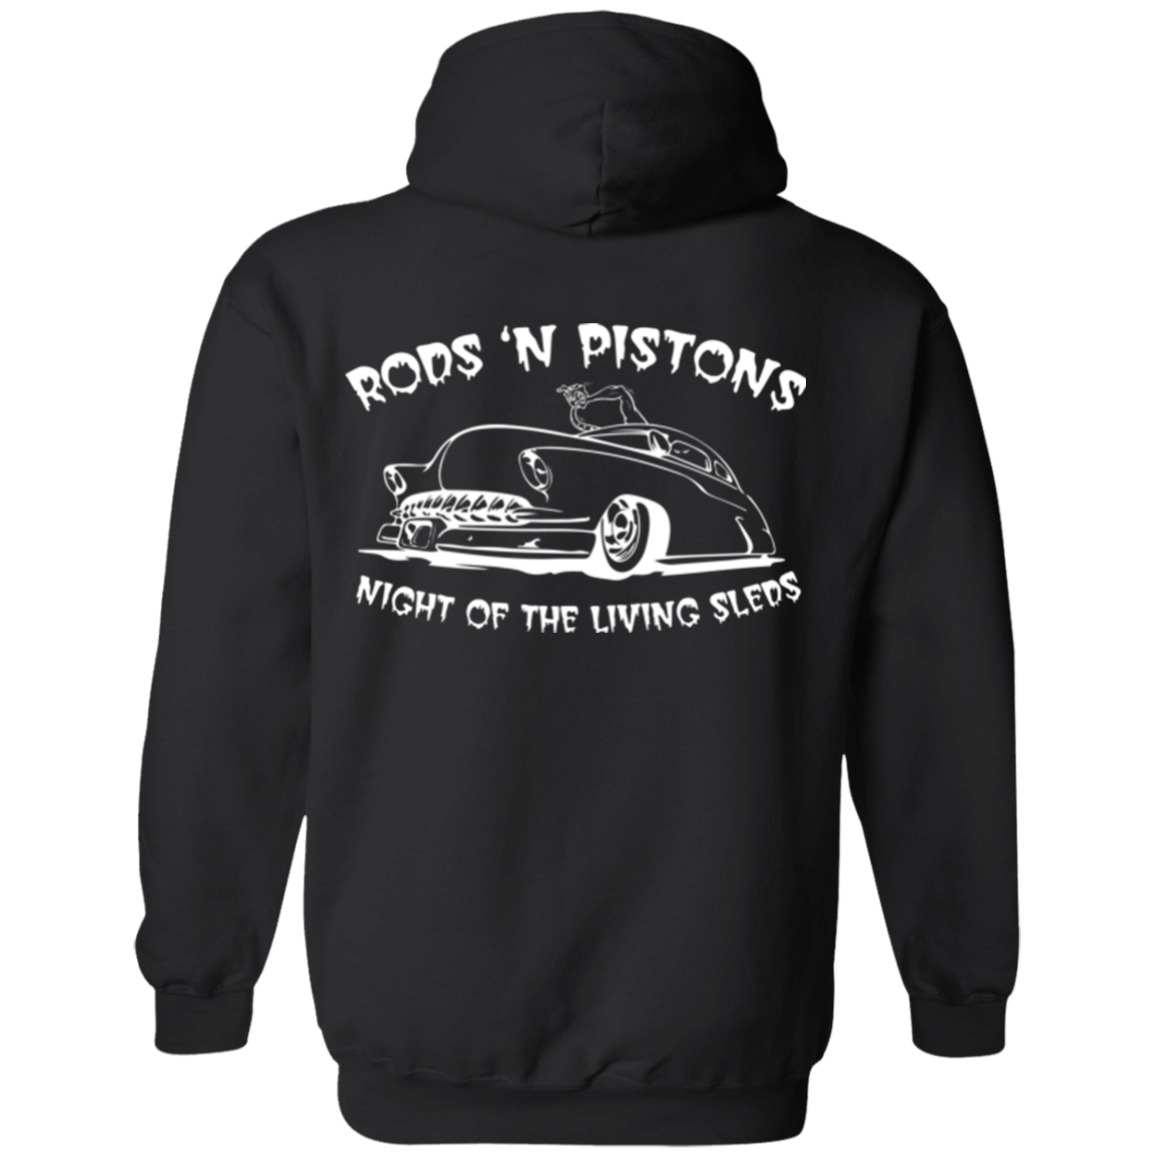 Night of the Living Sleds Pullover Hoodie